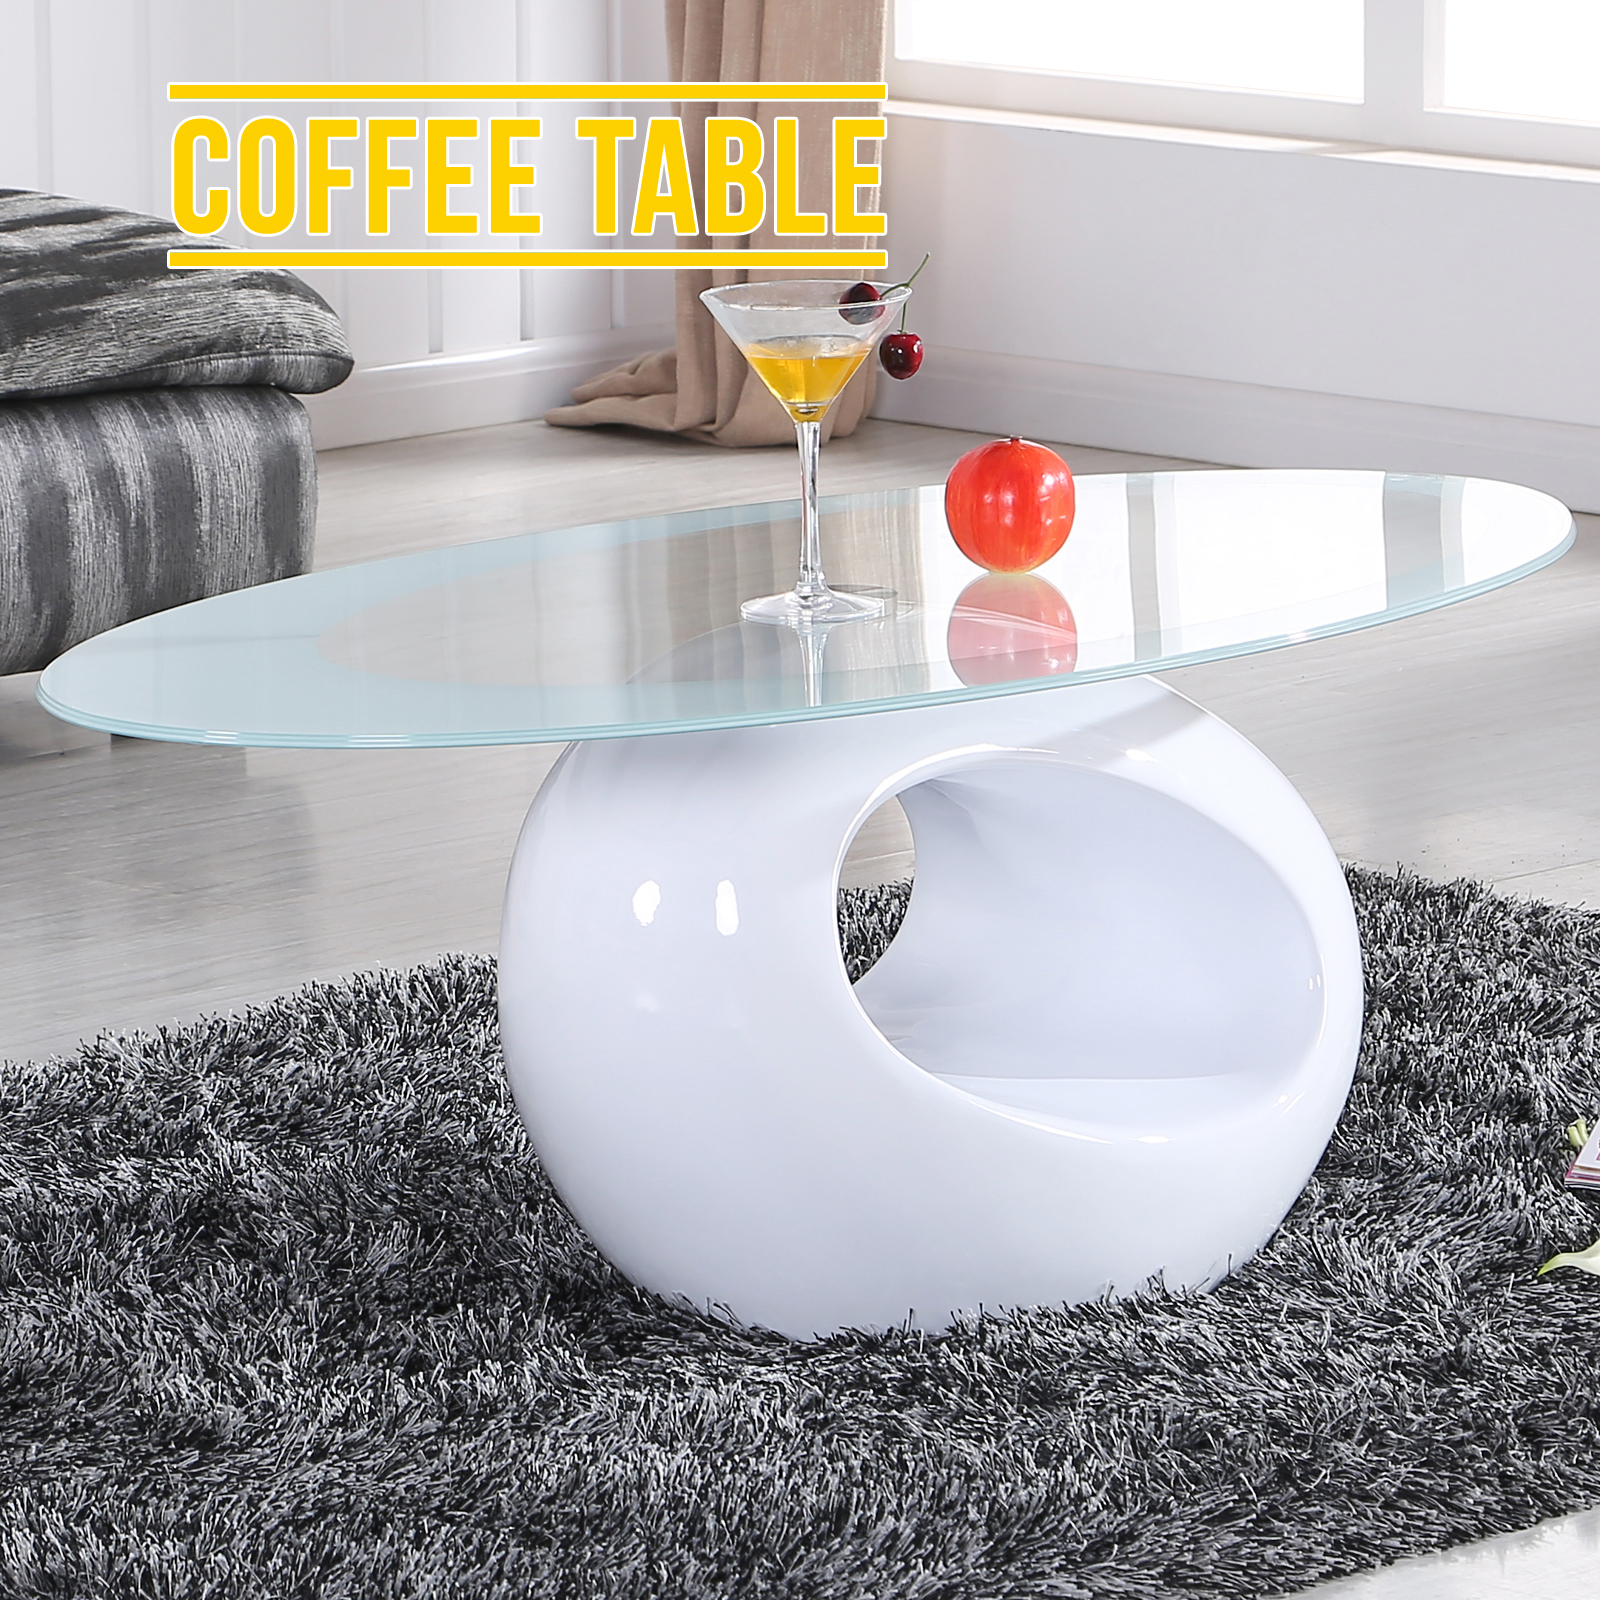 fabulous 1312 tea table living room furniture tempered glass | Contemporary Glass Oval Coffee Table Round Hollow Shelf ...